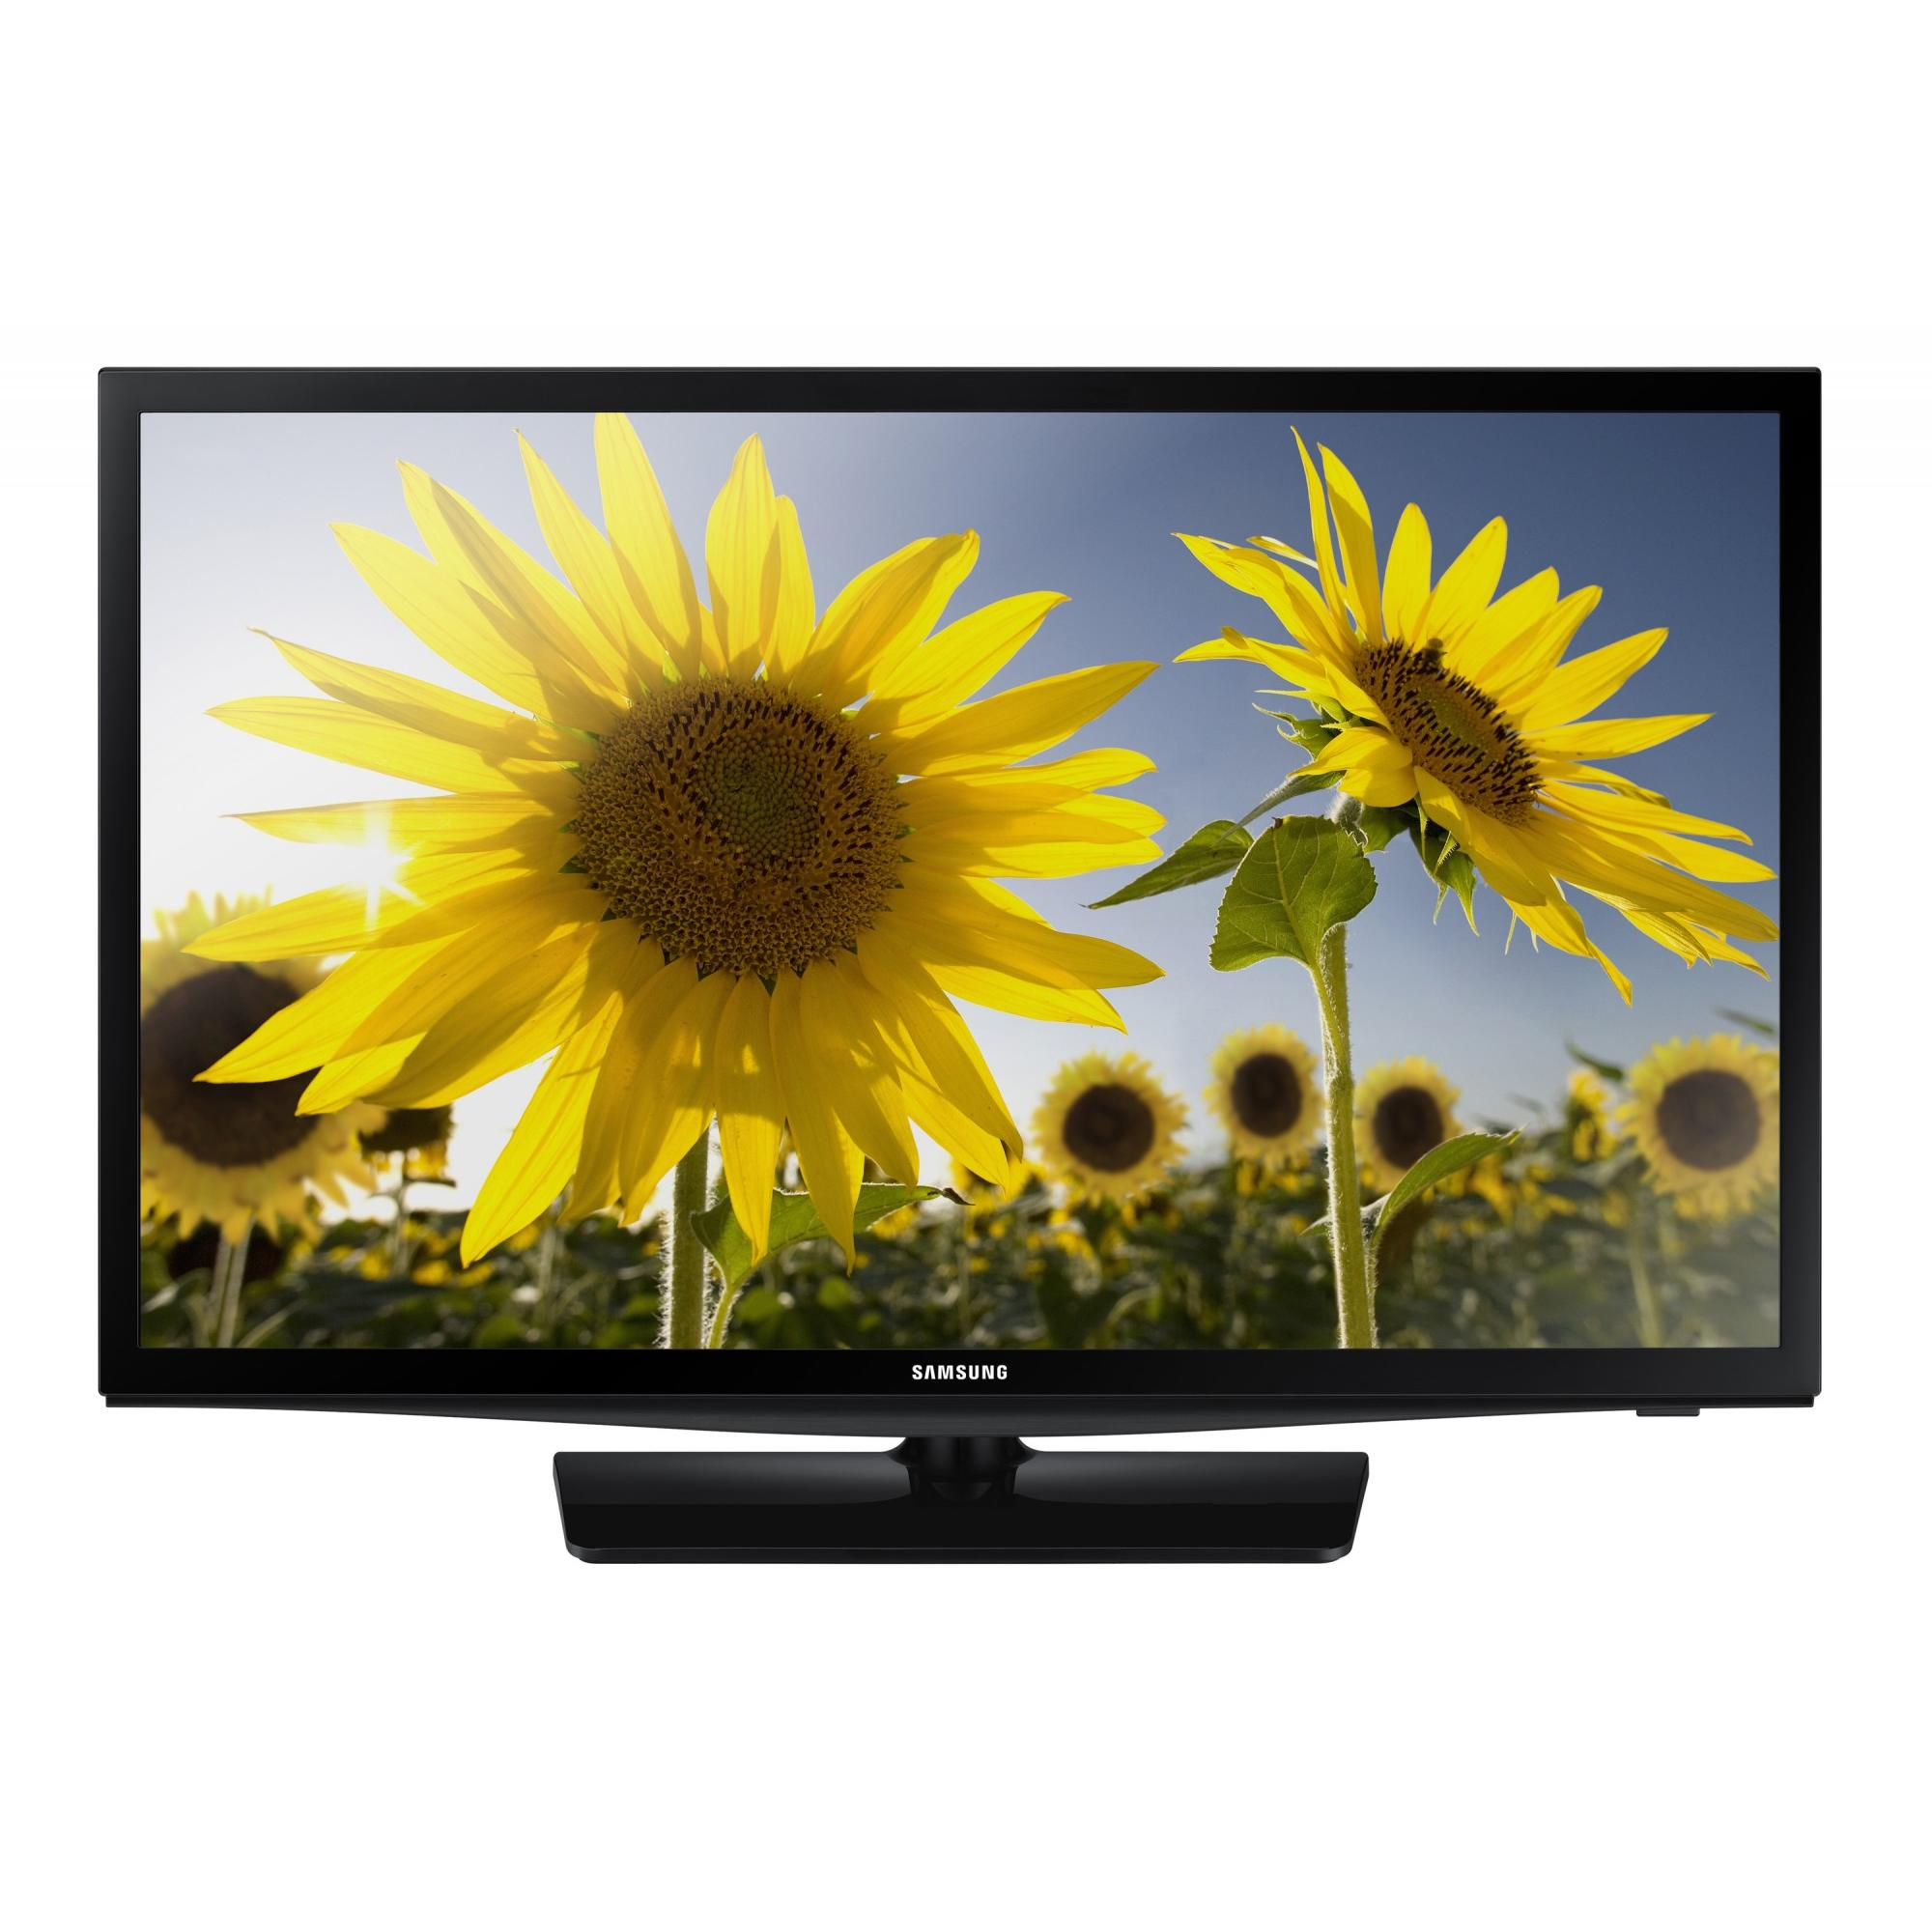 "SAMSUNG 28"" 4500 Series - HD LED TV - 720p, 120MR (Model#: UN28H4500)"